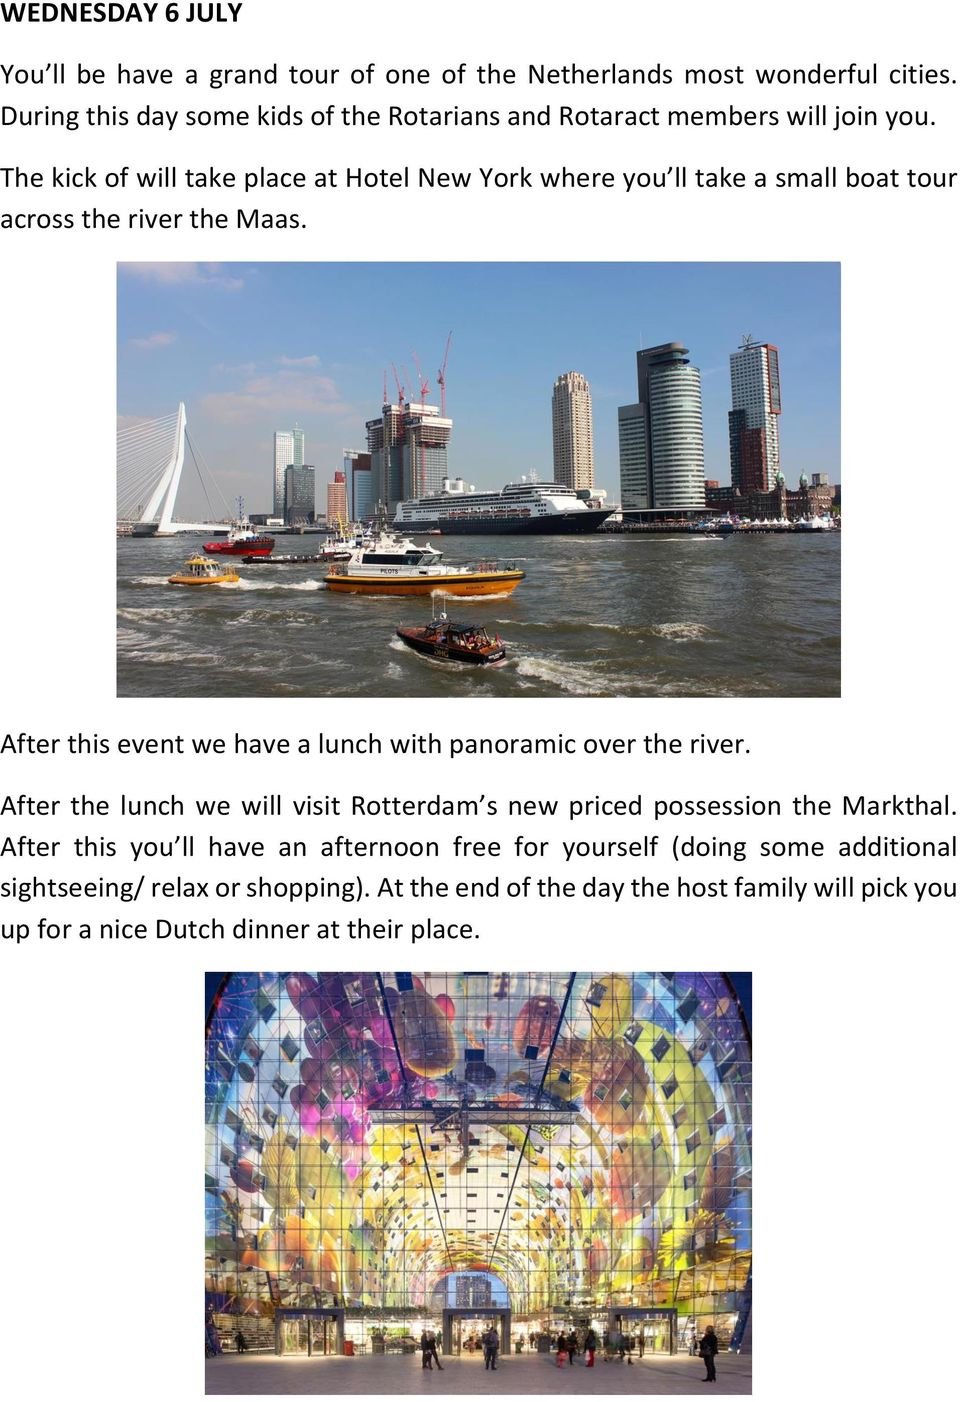 The kick of will take place at Hotel New York where you ll take a small boat tour across the river the Maas.